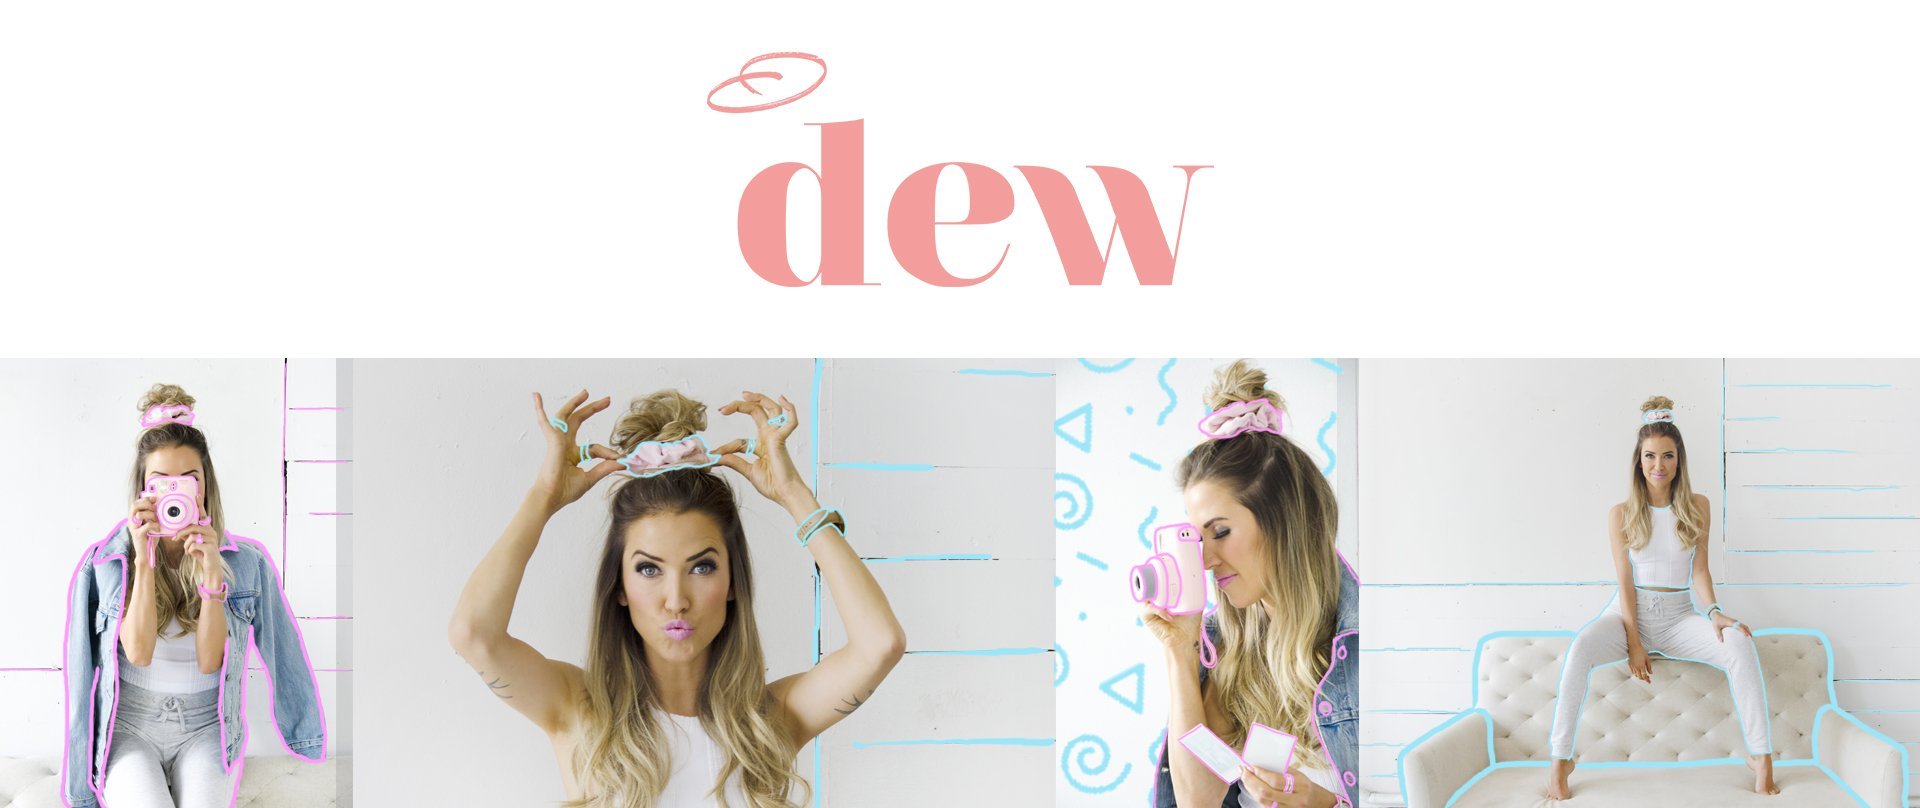 Check out  dew  scruchies from Kaitlyn Bristowe!